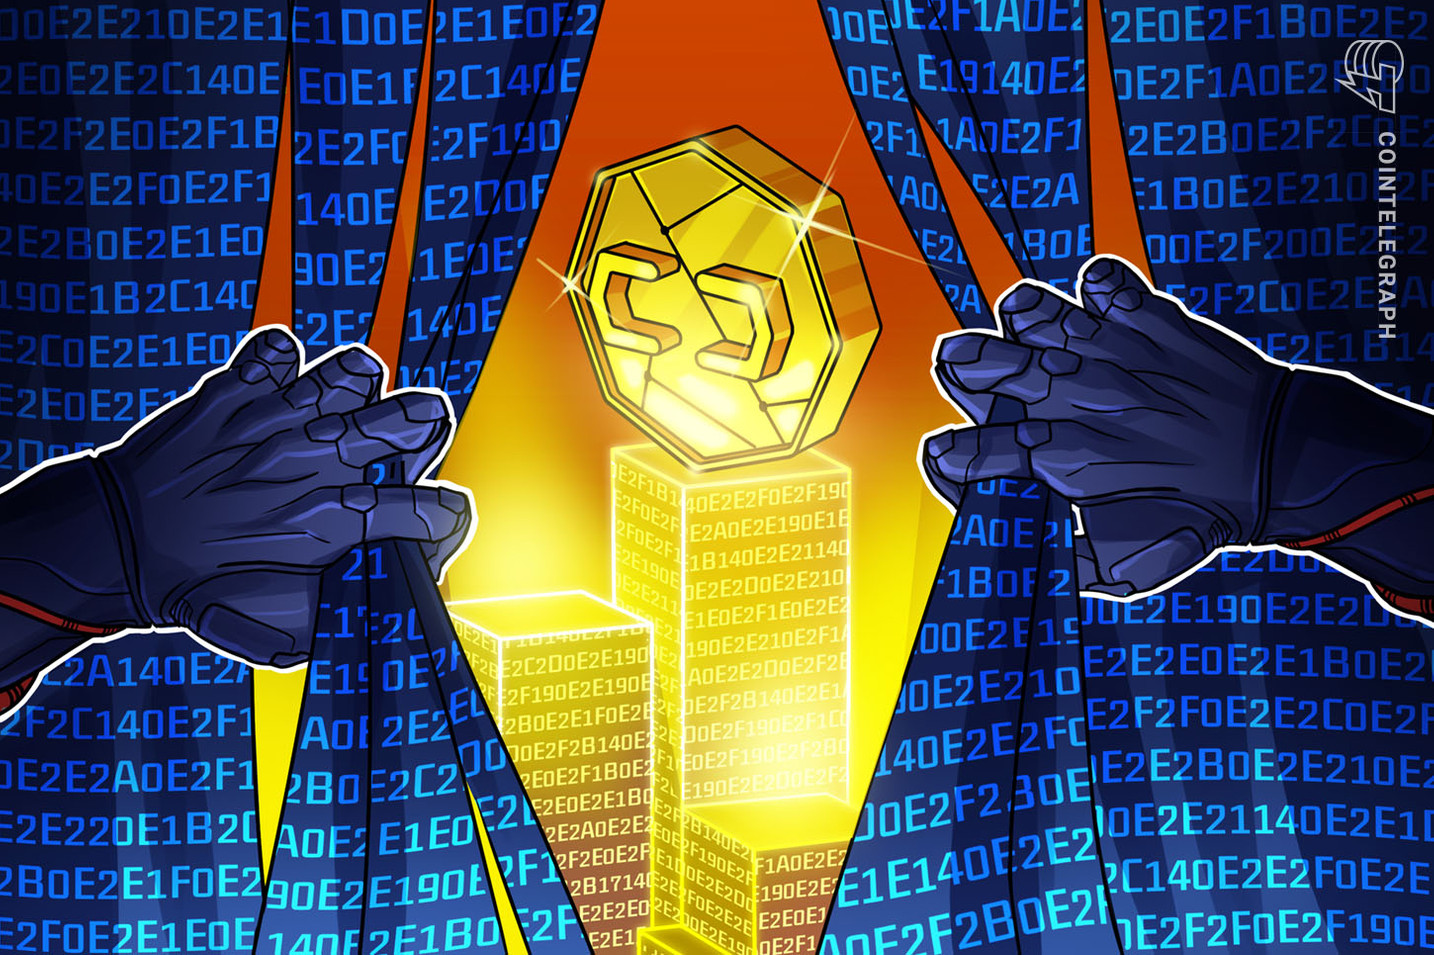 South Korea: Crypto Crimes Cost $2.28B Since July 2017